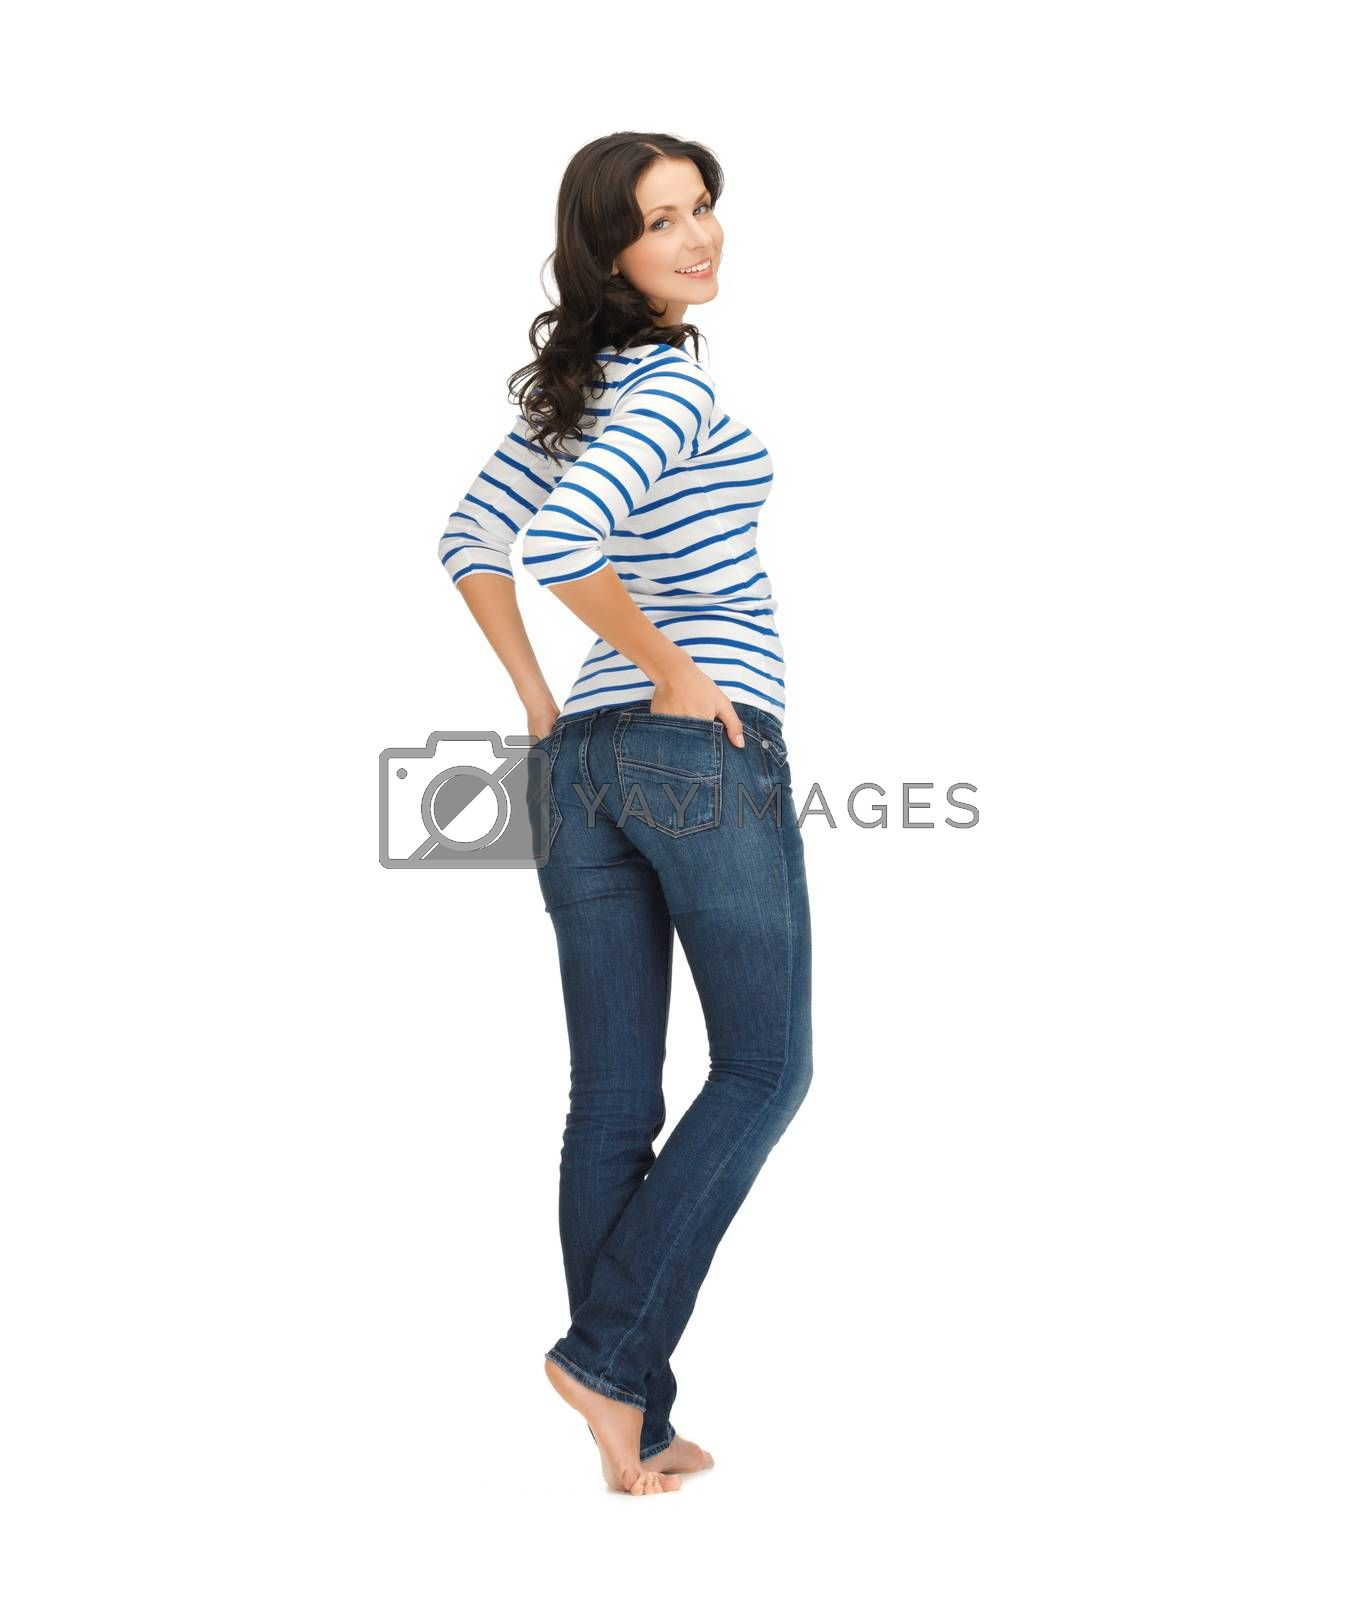 woman wearing jeans by dolgachov